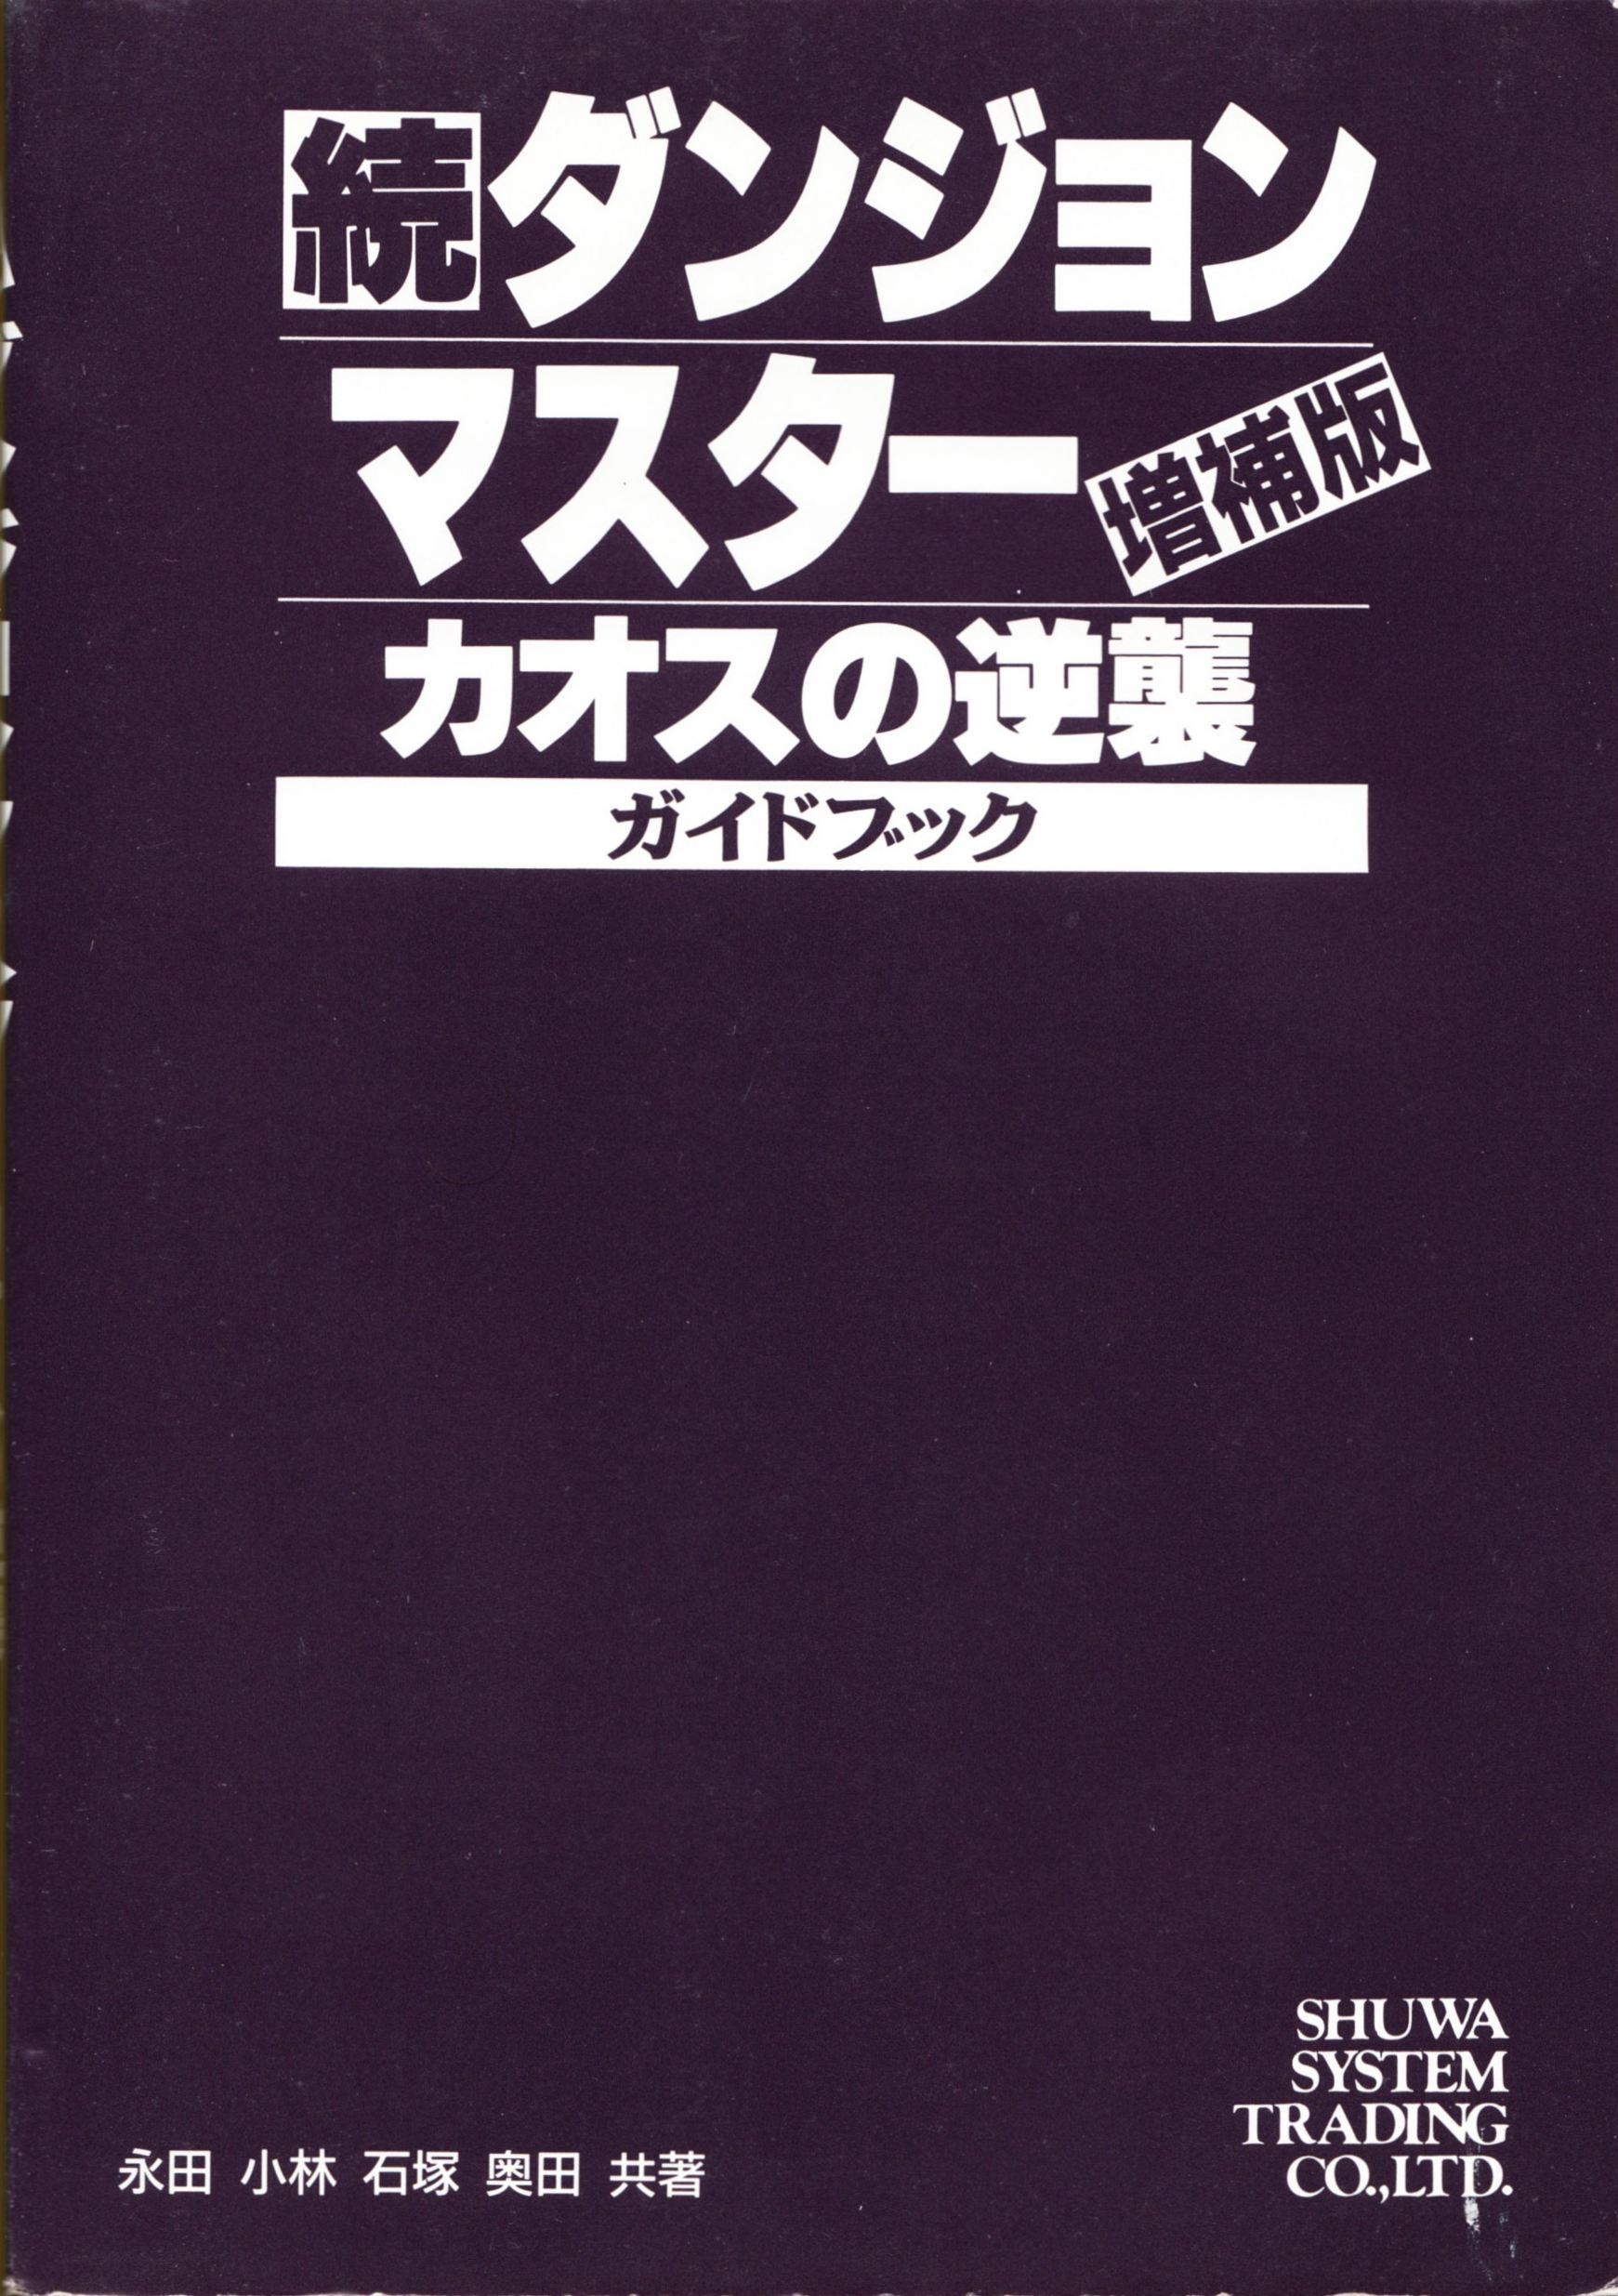 Hint Book - Dungeon Master Sequel Chaos Strikes Back Guide Book Extended Edition - JP - Cover - Front - Scan